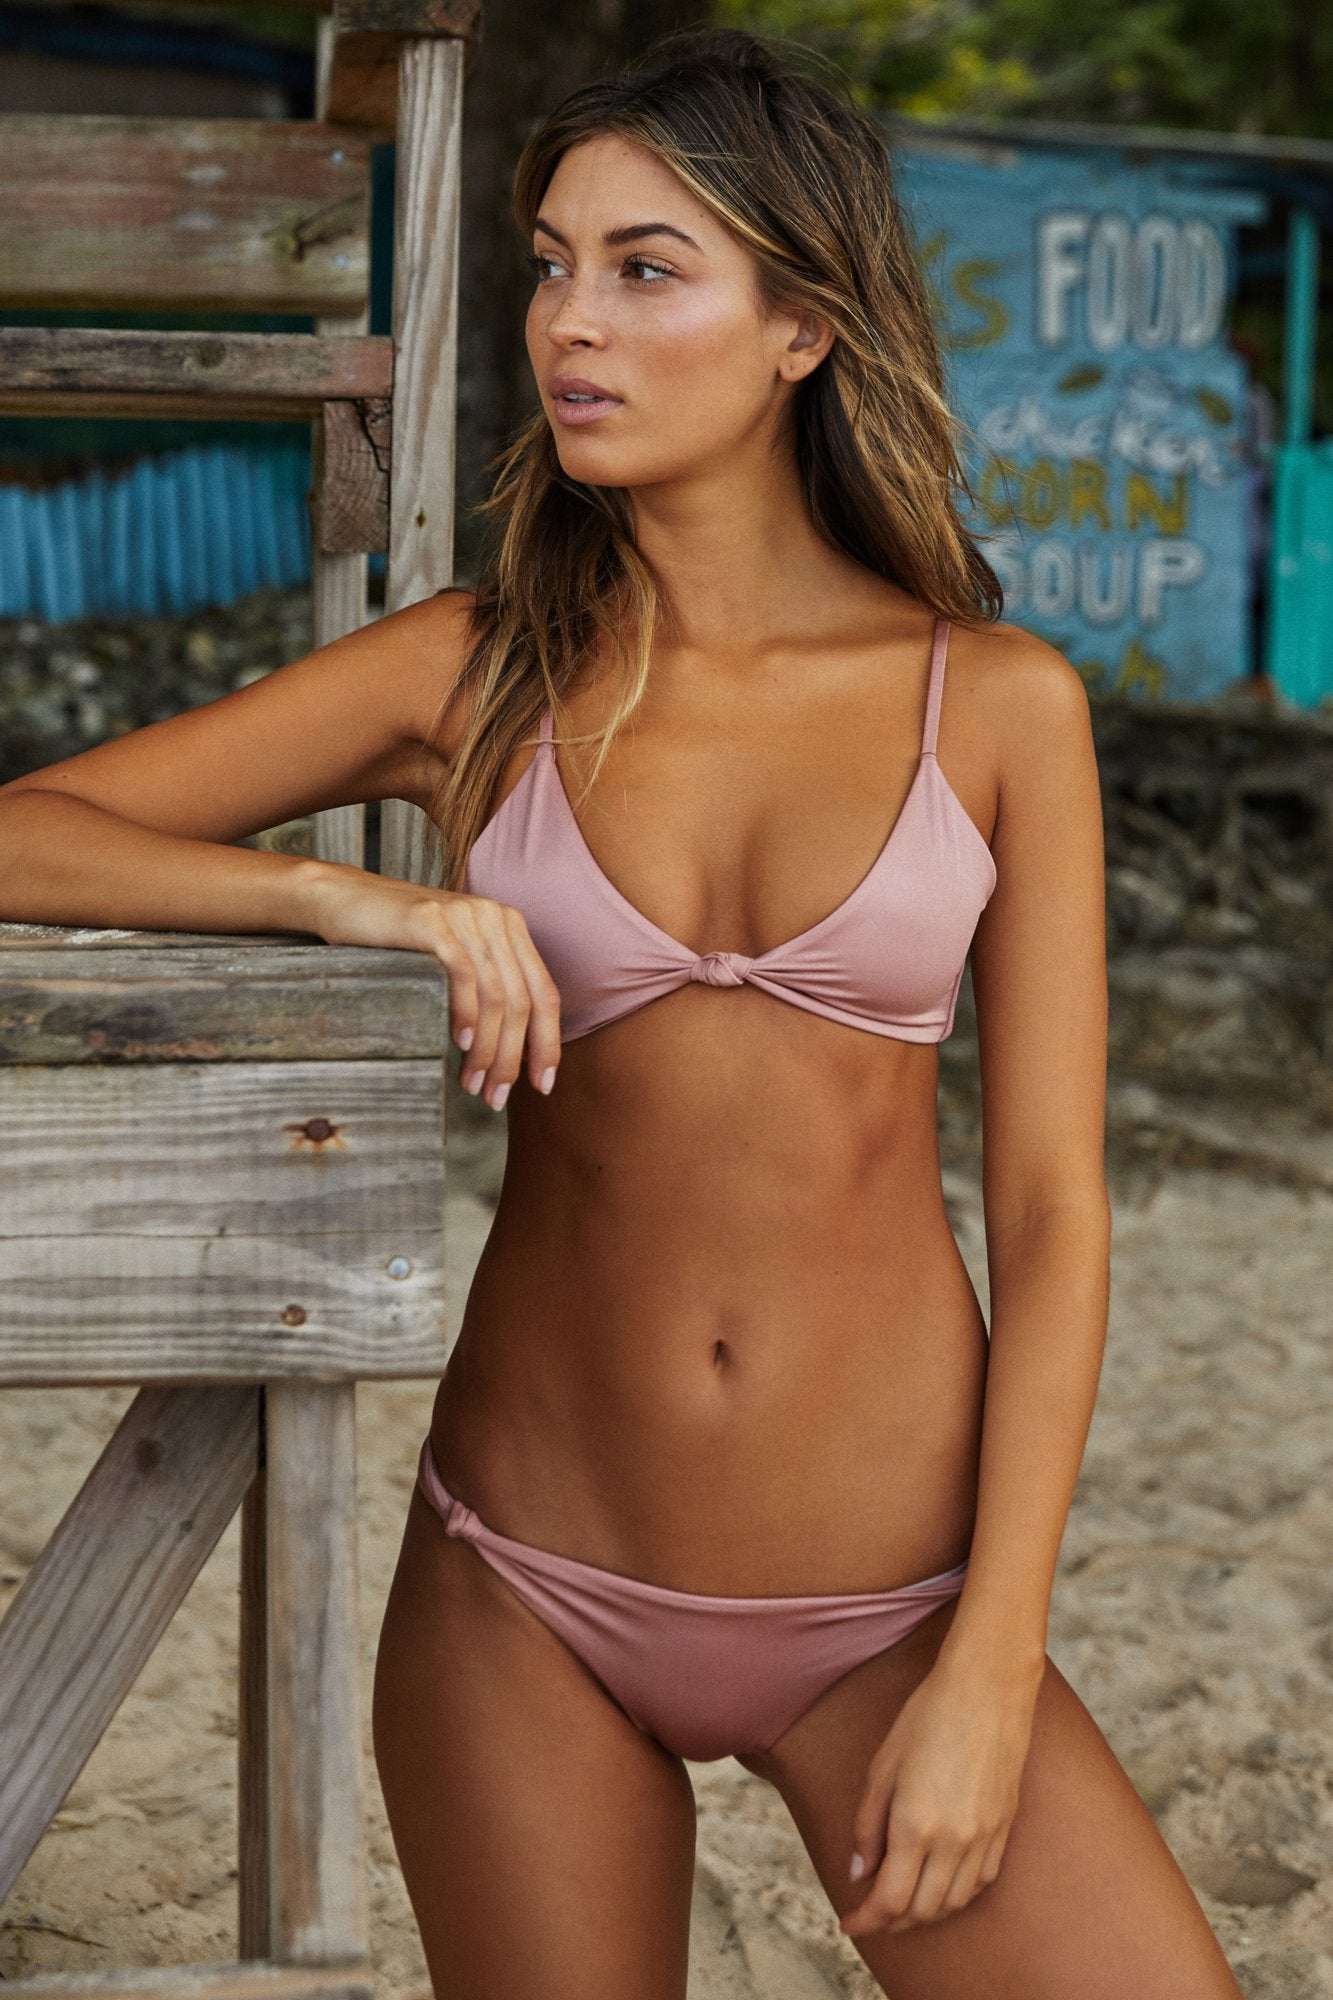 Front view of model wearing light, dusty pink low-rise bikini bottoms featuring knotted side detail.